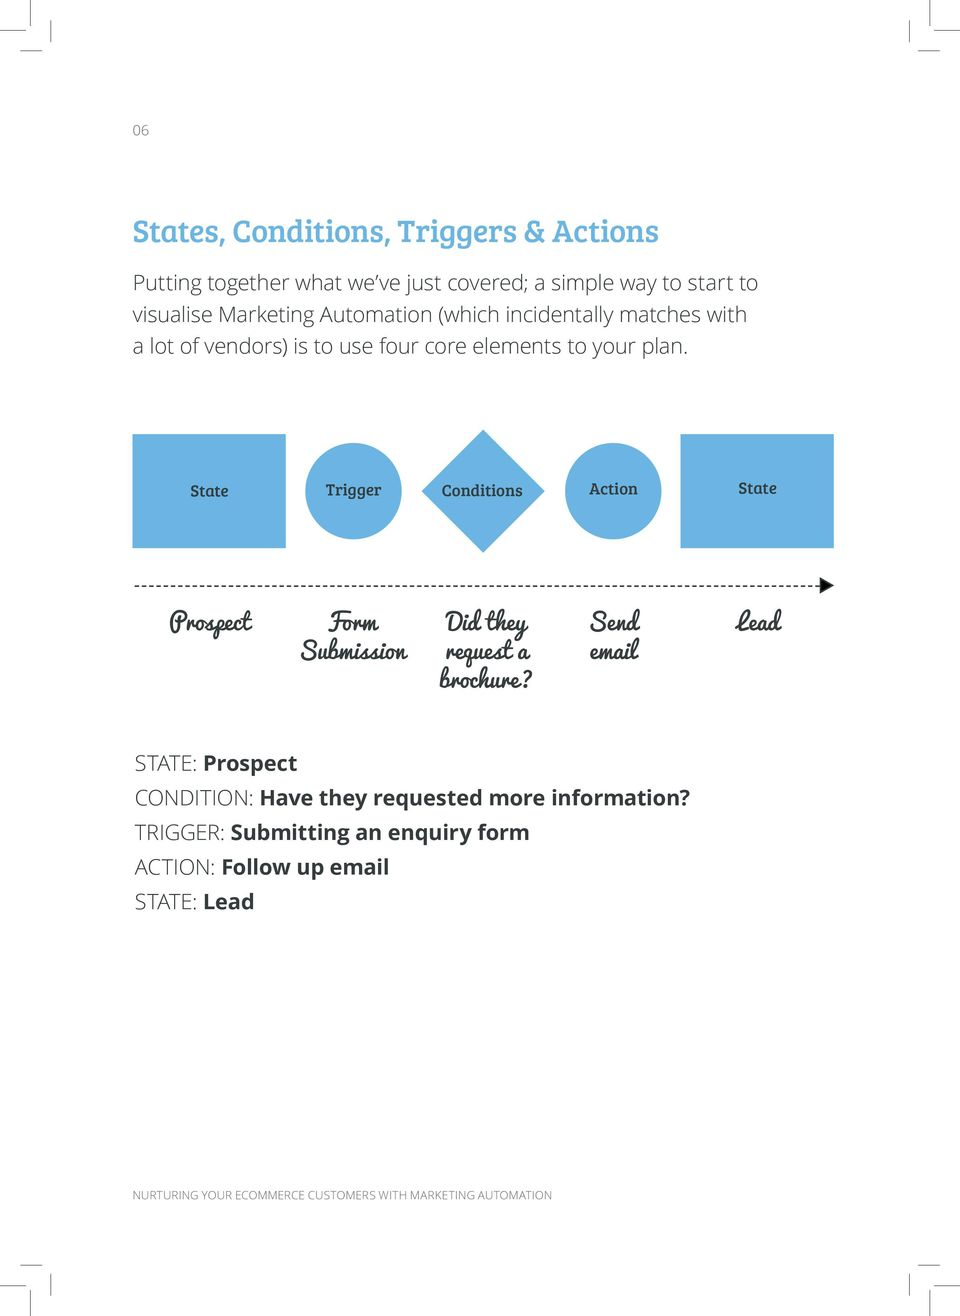 State Trigger Conditions Action State Prospect Form Submission Did they request a brochure?